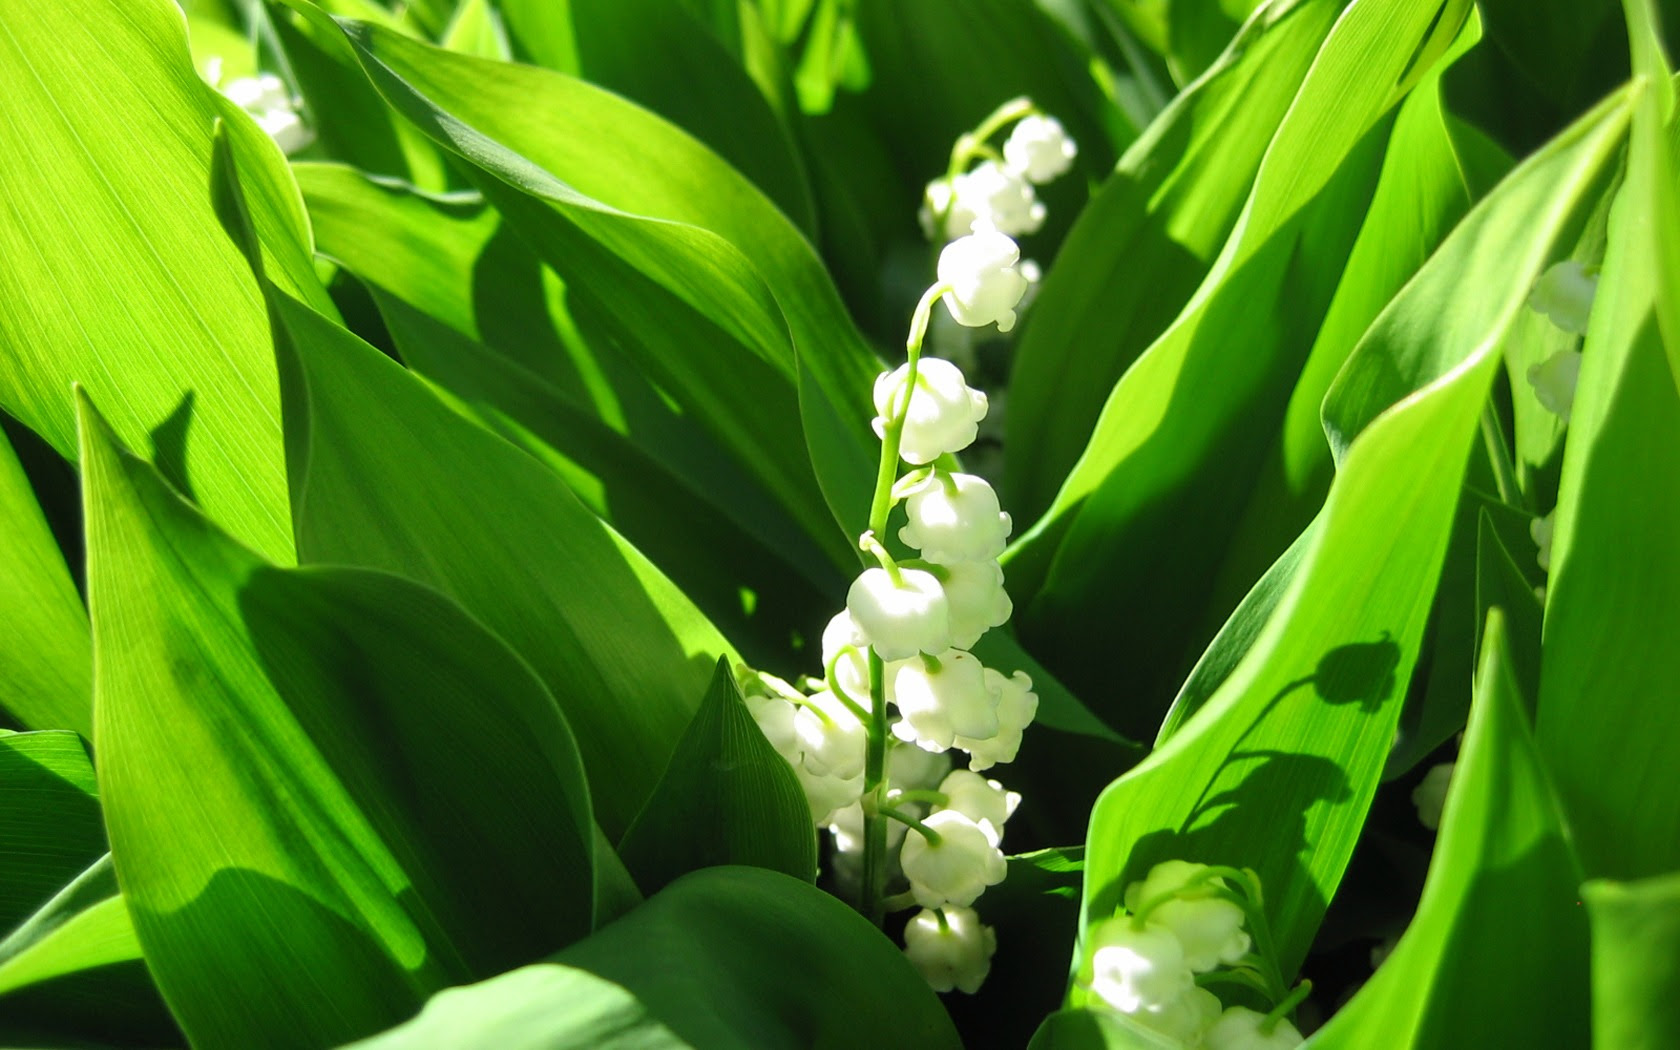 Lily Of The Valley Wallpaper Flowers Nature Wallpapers In Jpg